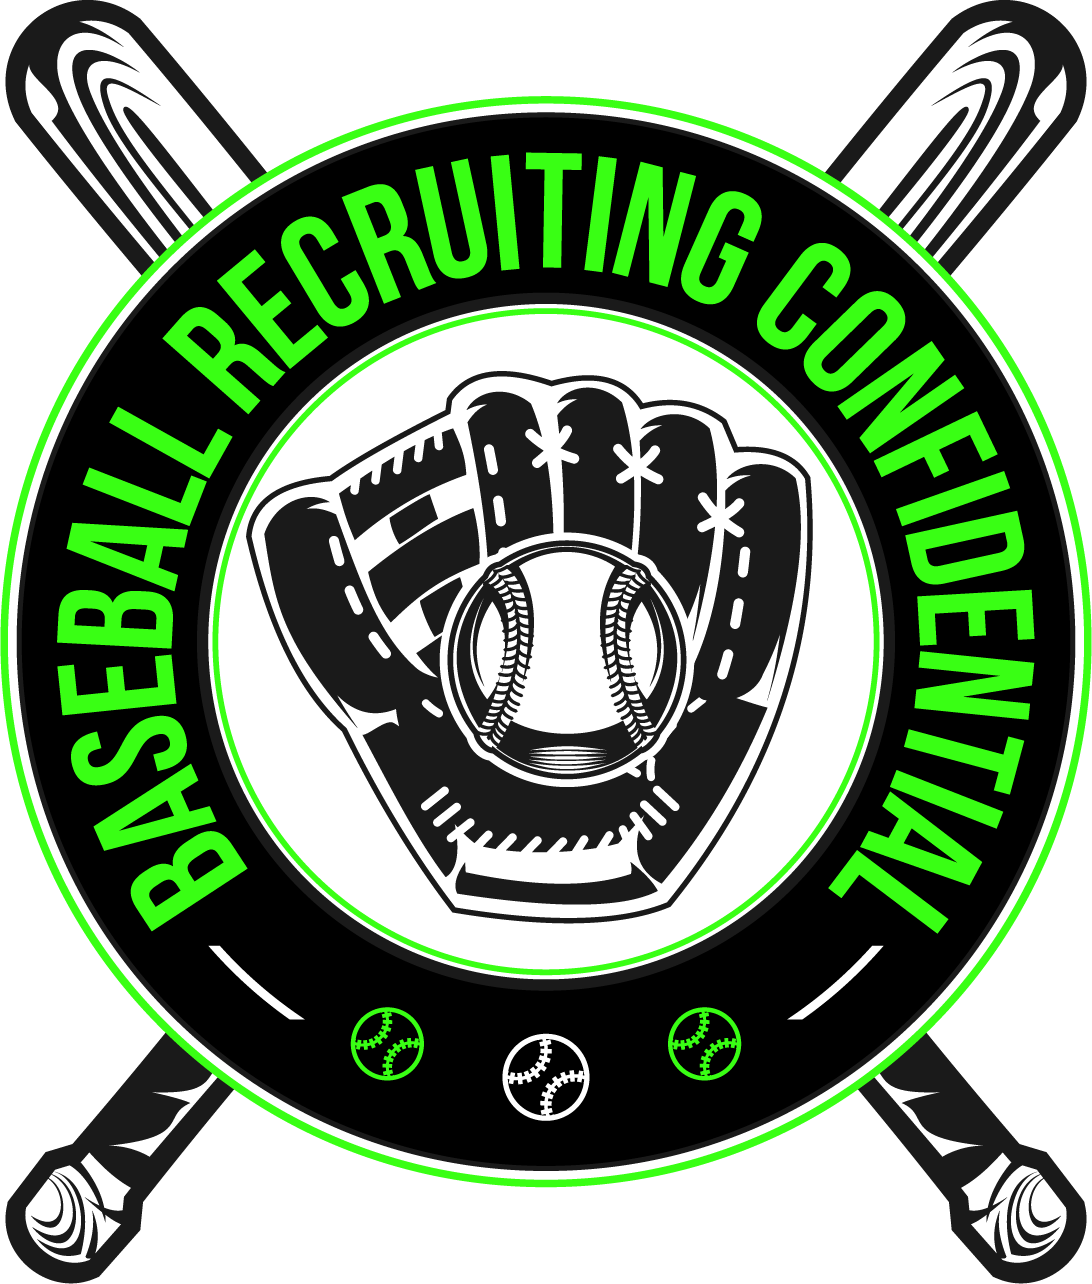 Goshen college baseball clipart clip download Baseball Recruiting Confidential Podcast - Elite Sports Advising clip download